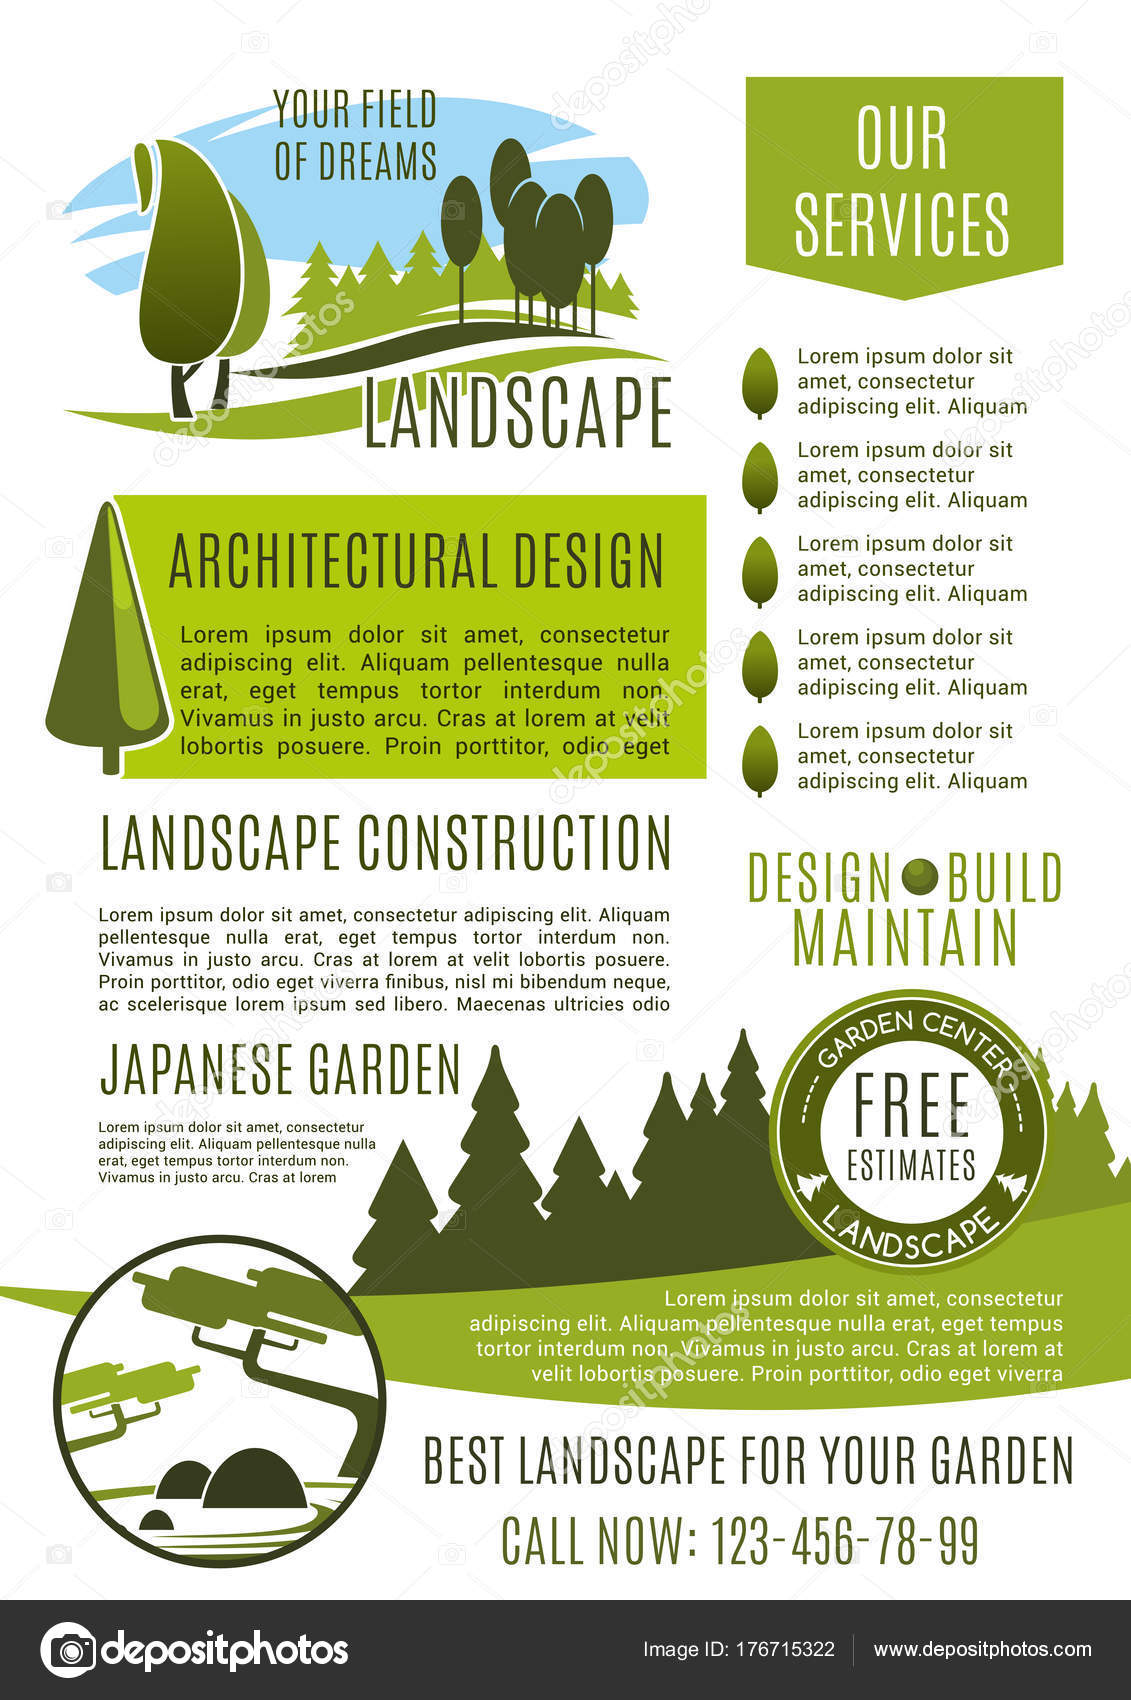 Landscape design company business banner template stock for Landscape design company